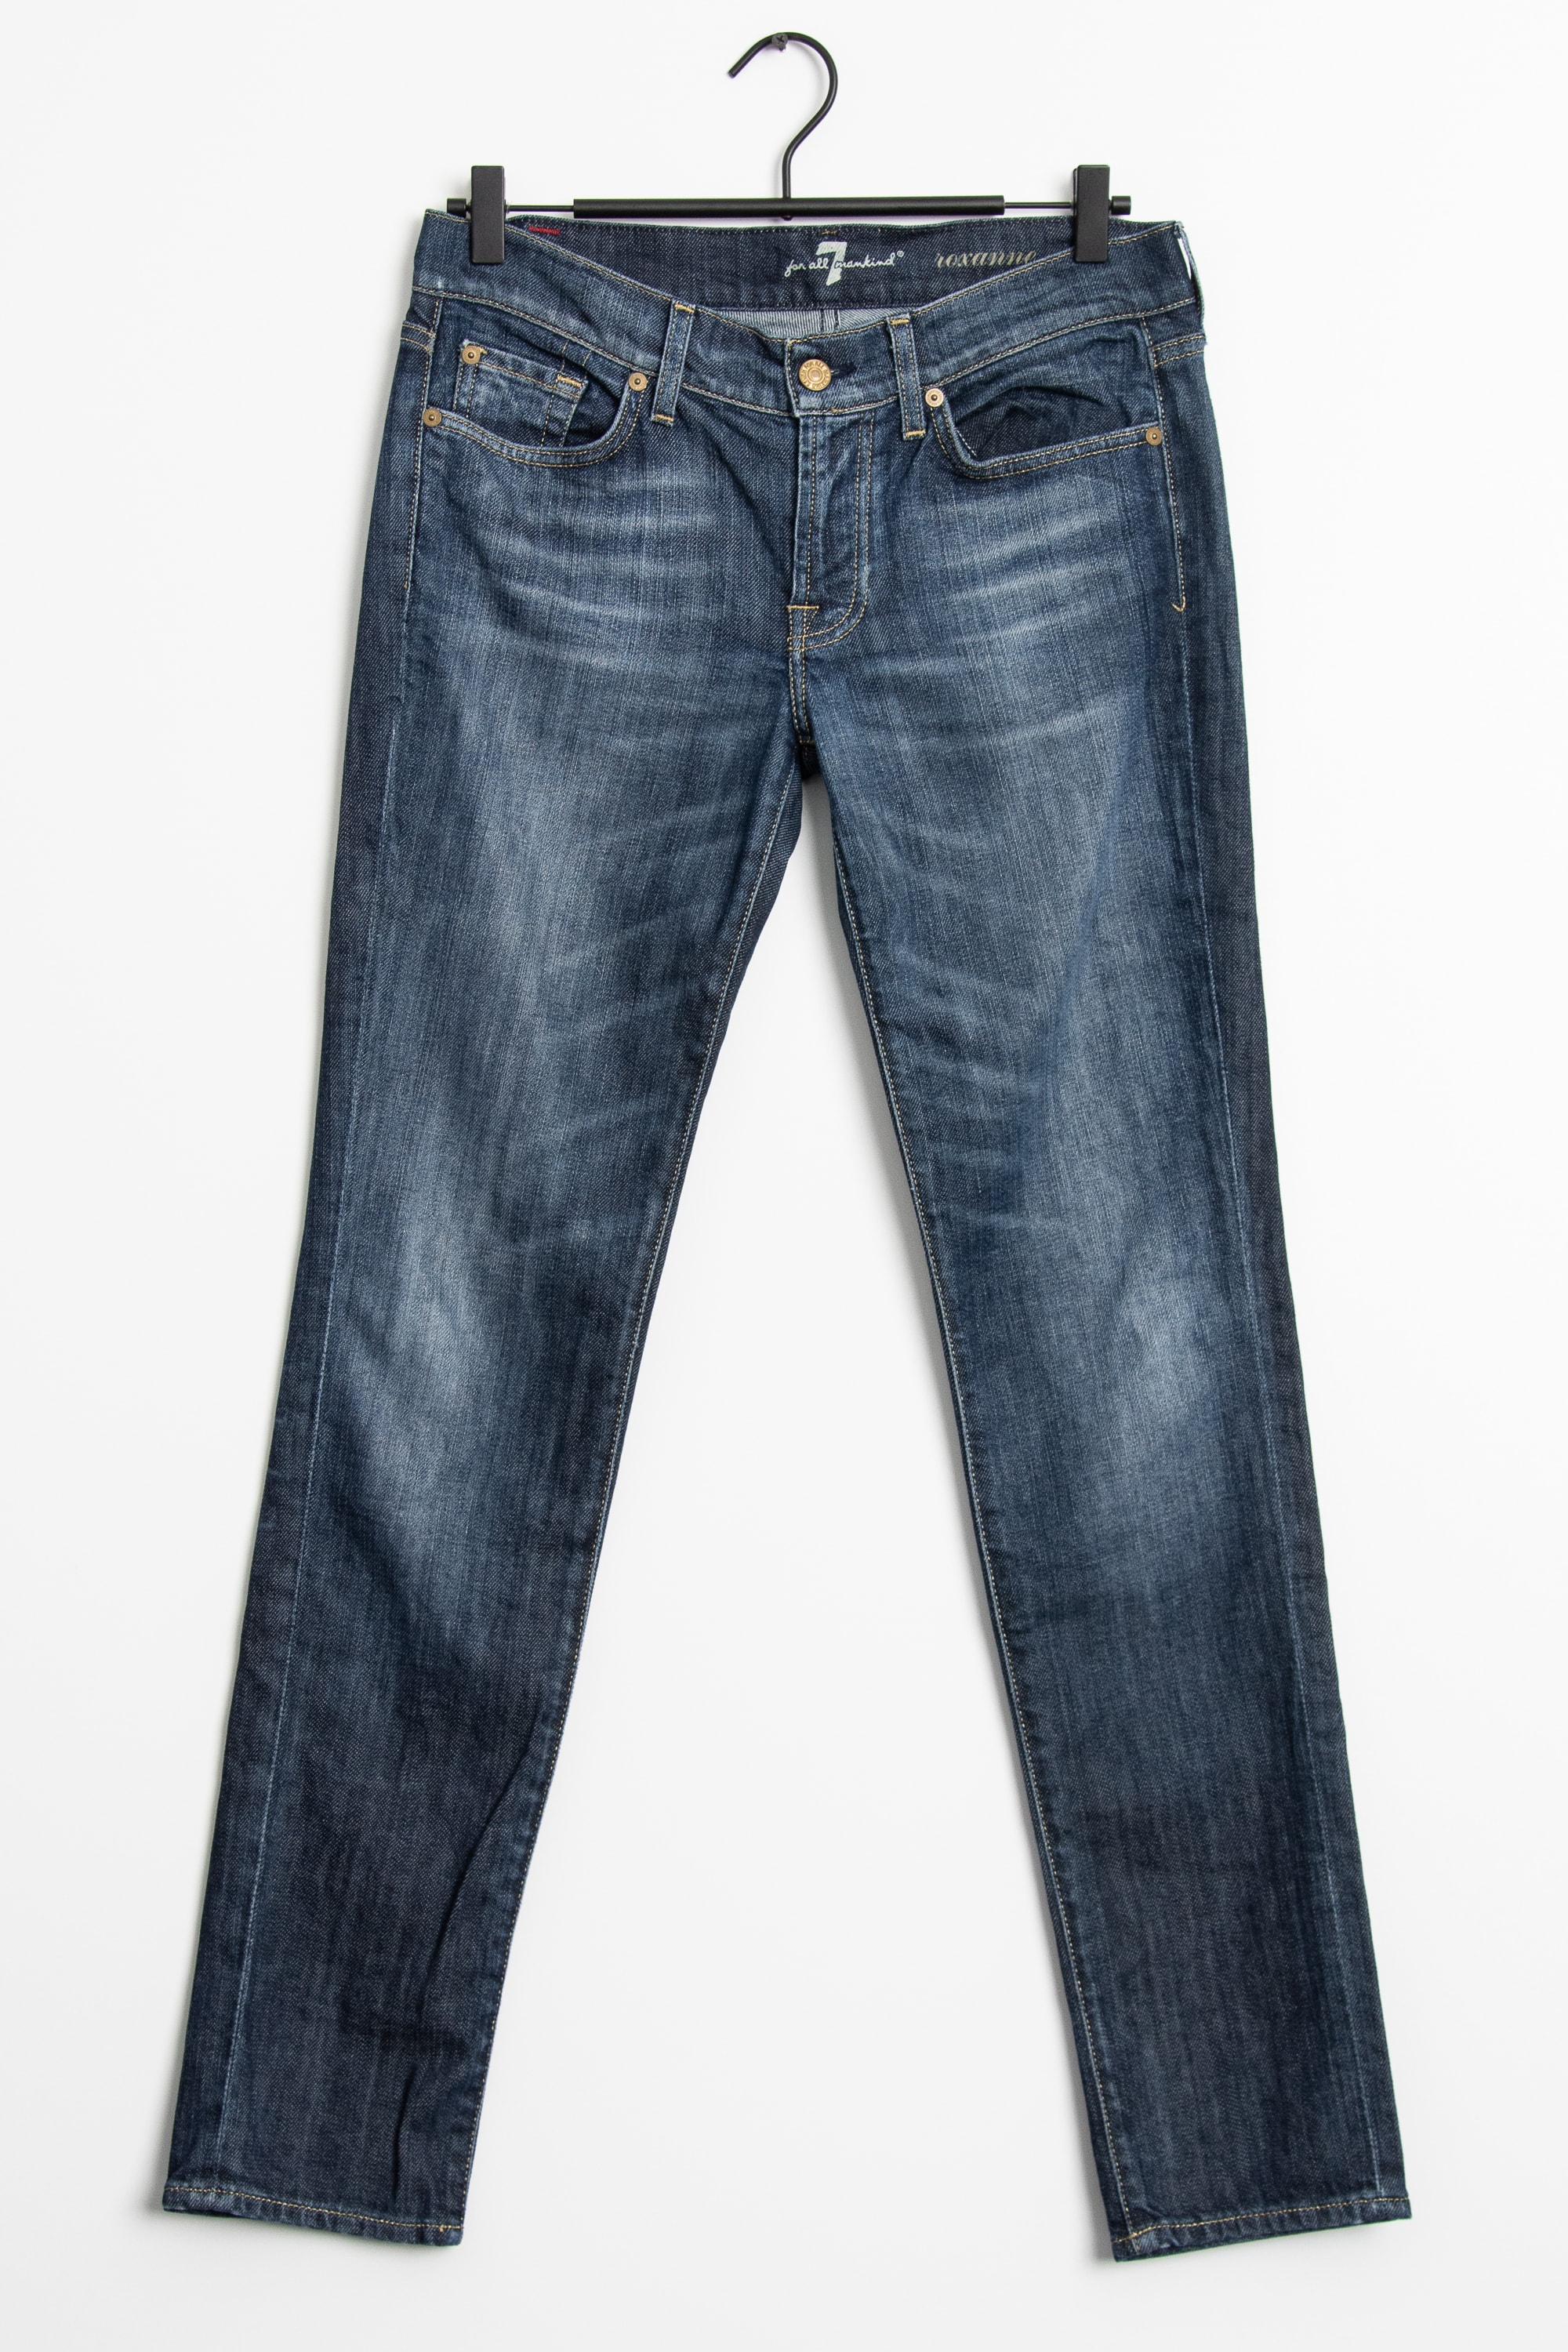 7 FOR ALL MANKIND Jeans Blau Gr.S